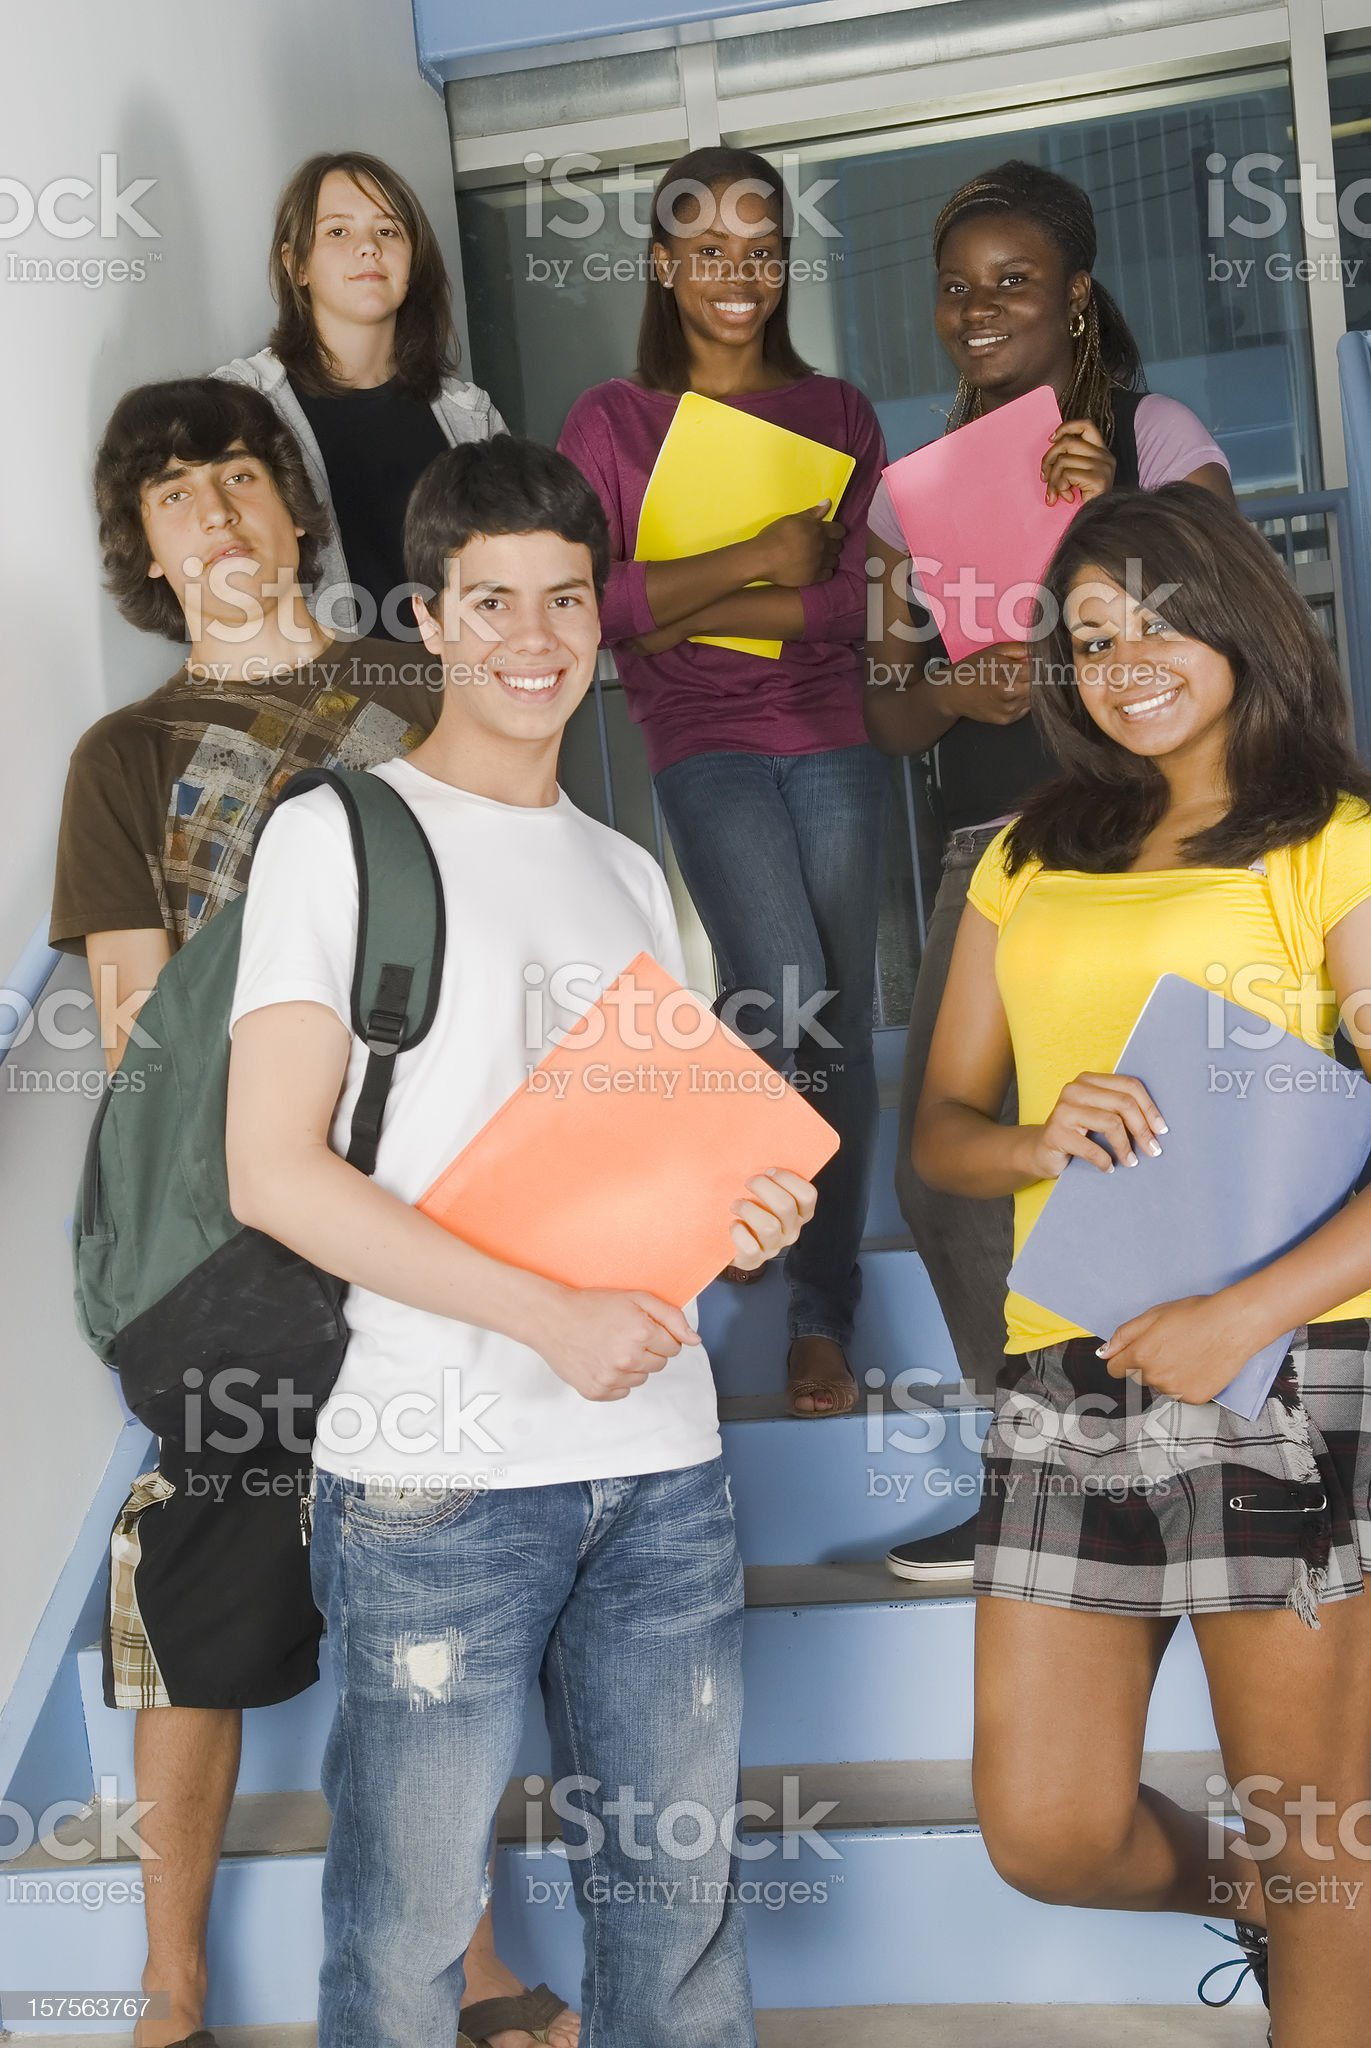 Teenagers standing on the school staircase - II royalty-free stock photo